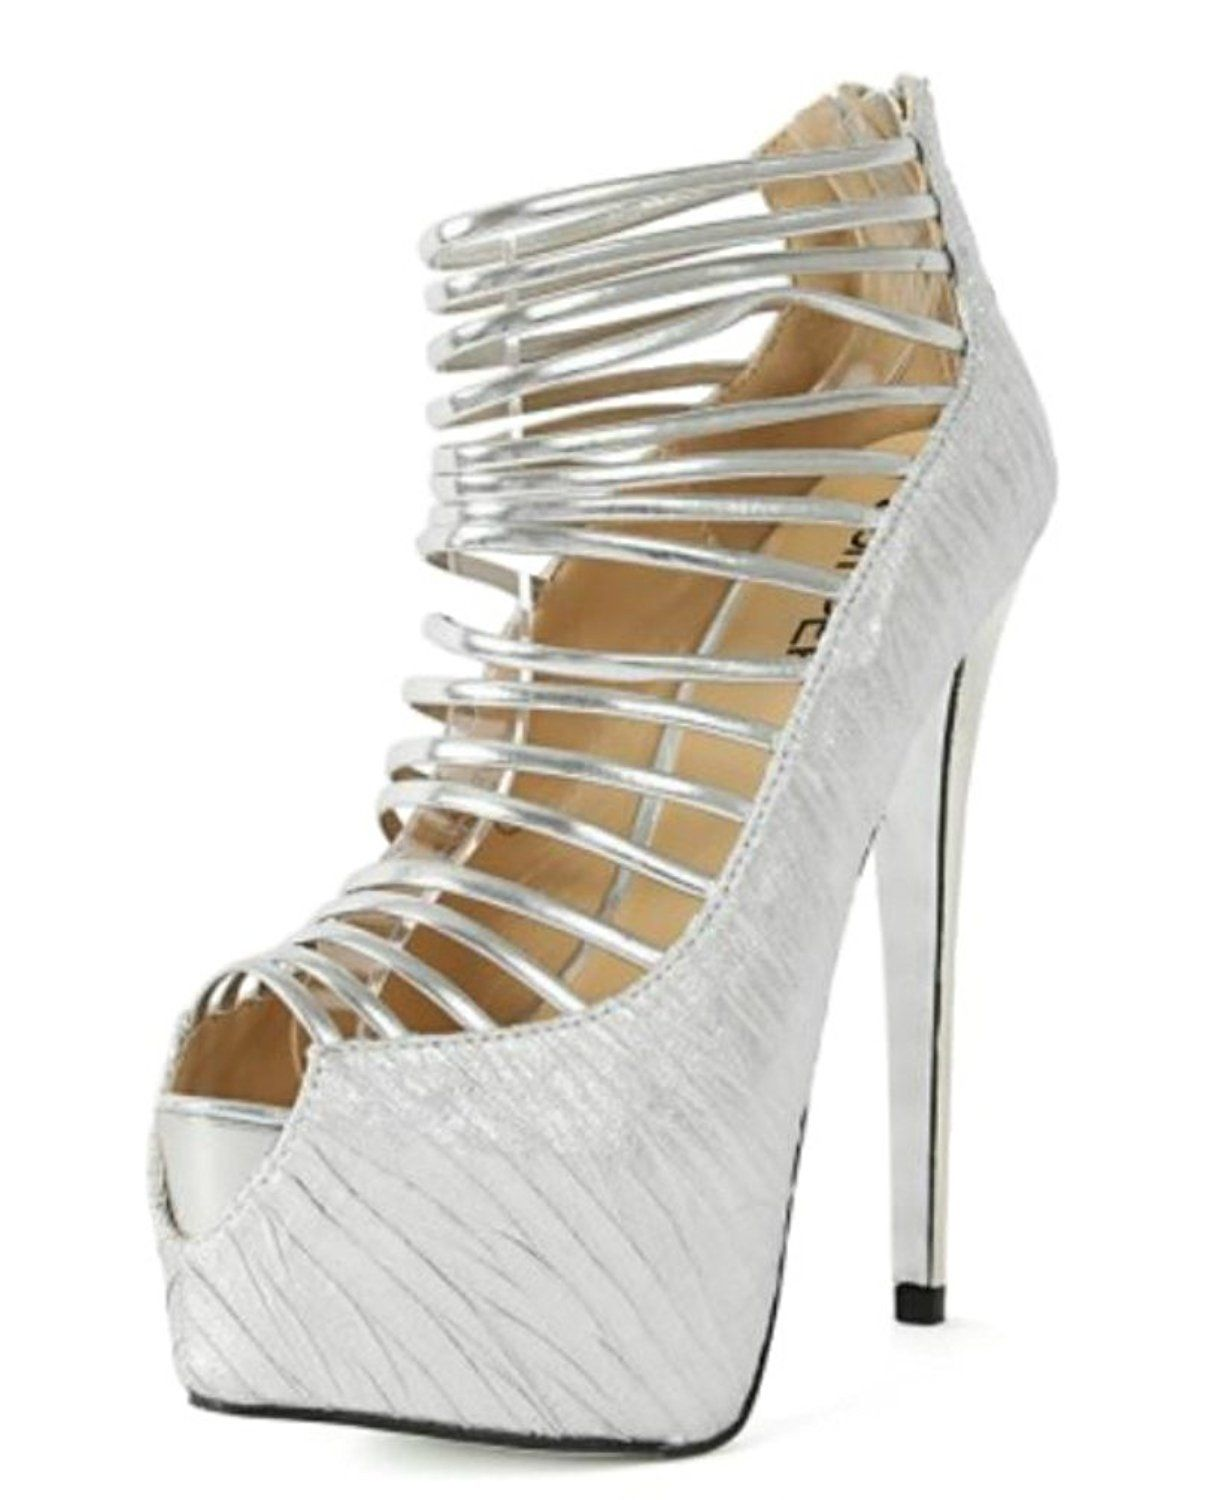 Elle Gold Stilettos eastbay cheap price free shipping extremely buy cheap sneakernews view sale online low shipping tR6VR